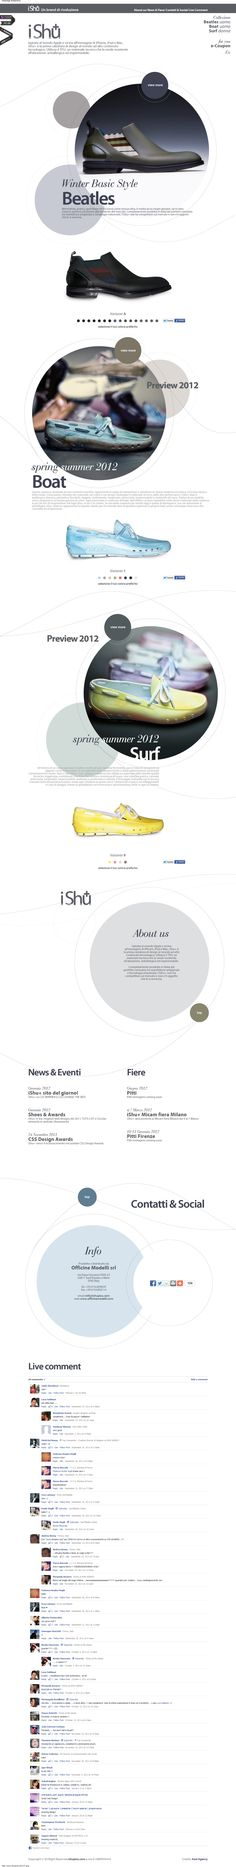 Web Design Inspiration - www.ishuplus.com/IT.php